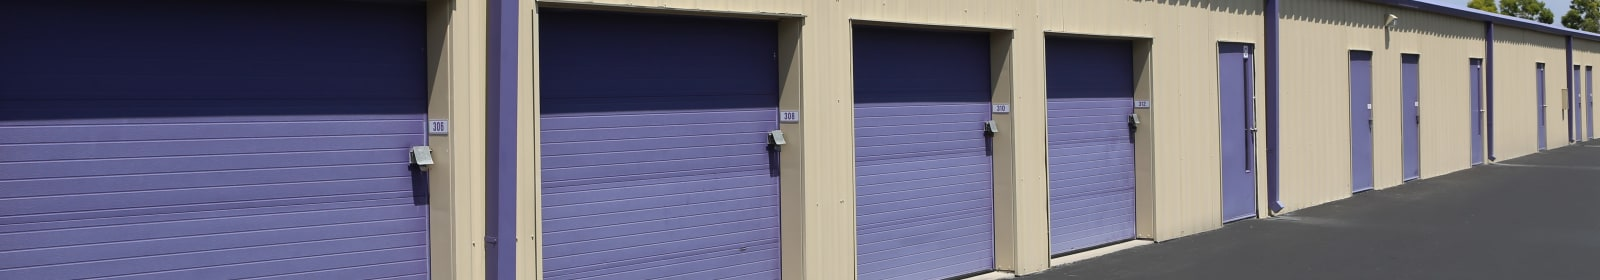 Unit sizes and prices at Midgard Self Storage in Melbourne, Florida